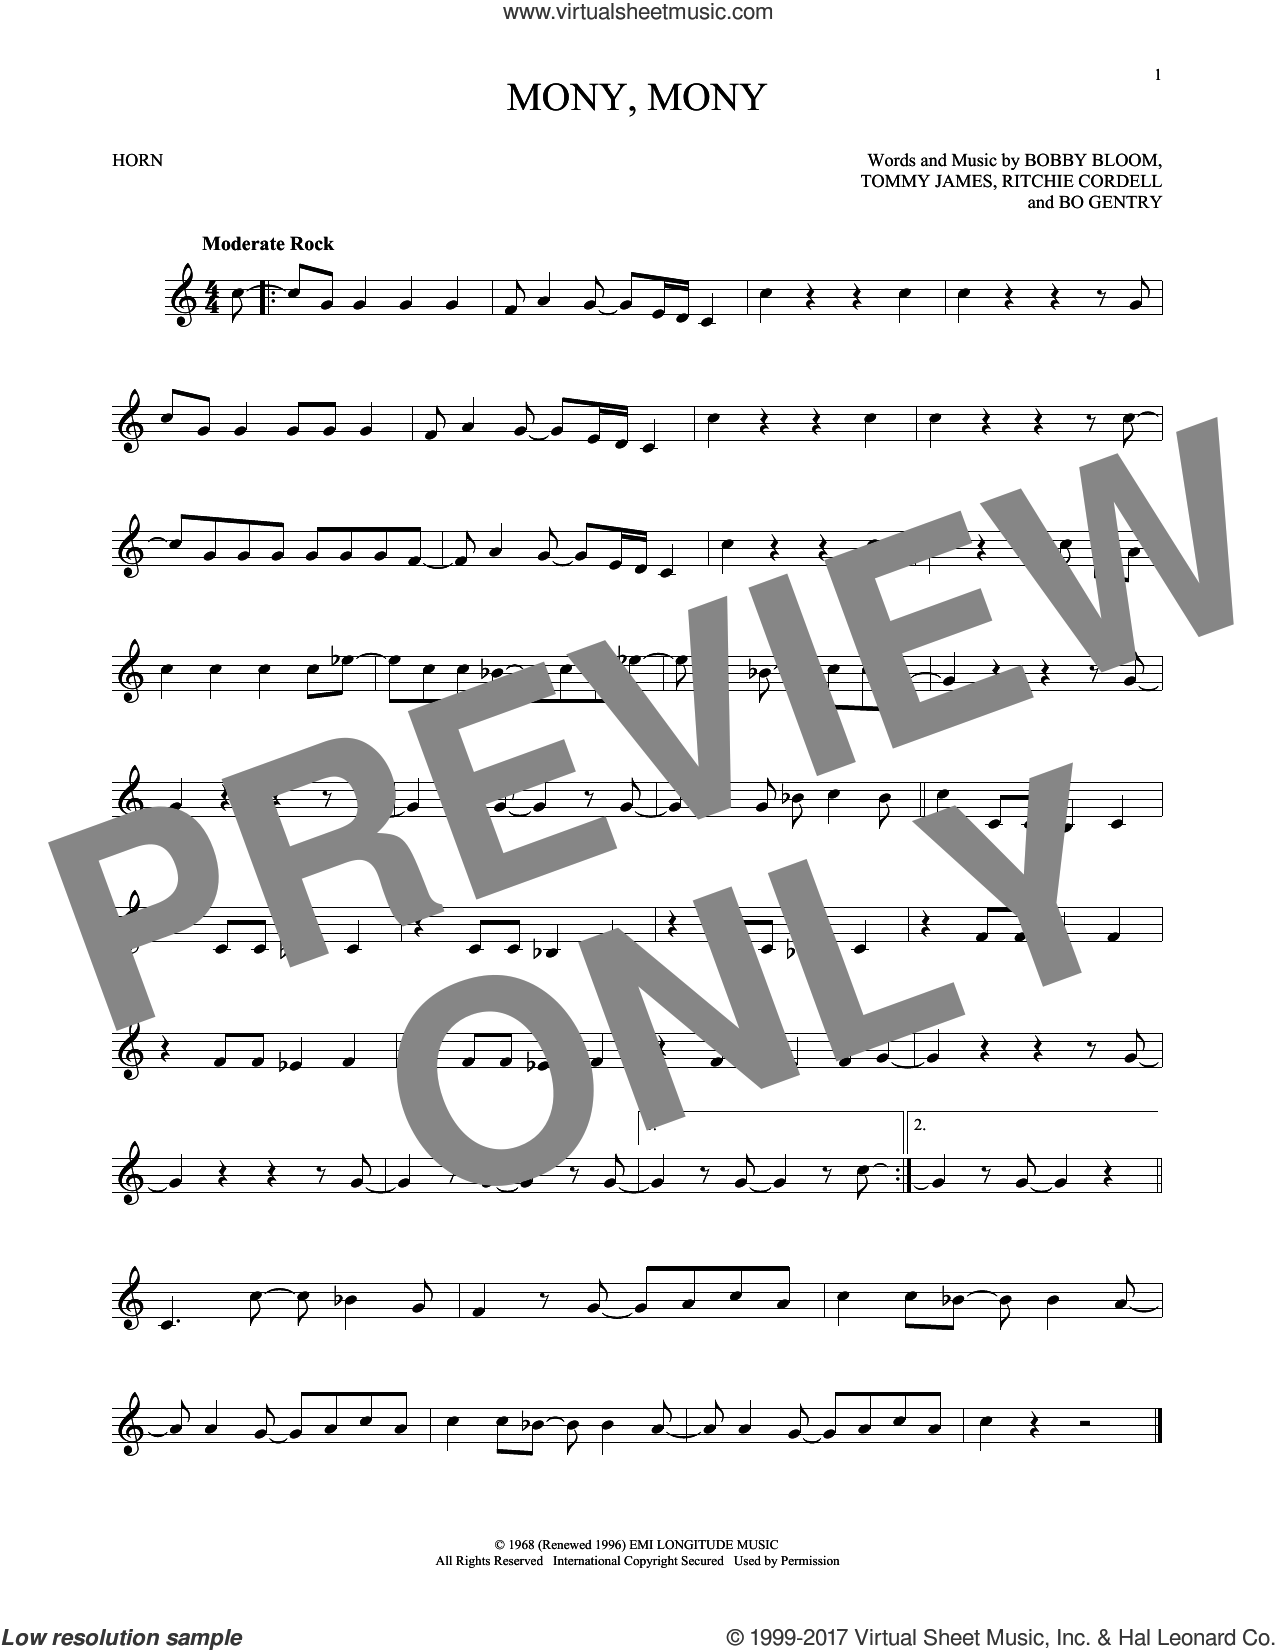 Mony, Mony sheet music for horn solo by Tommy James & The Shondells, Bo Gentry, Bobby Bloom and Ritchie Cordell, intermediate